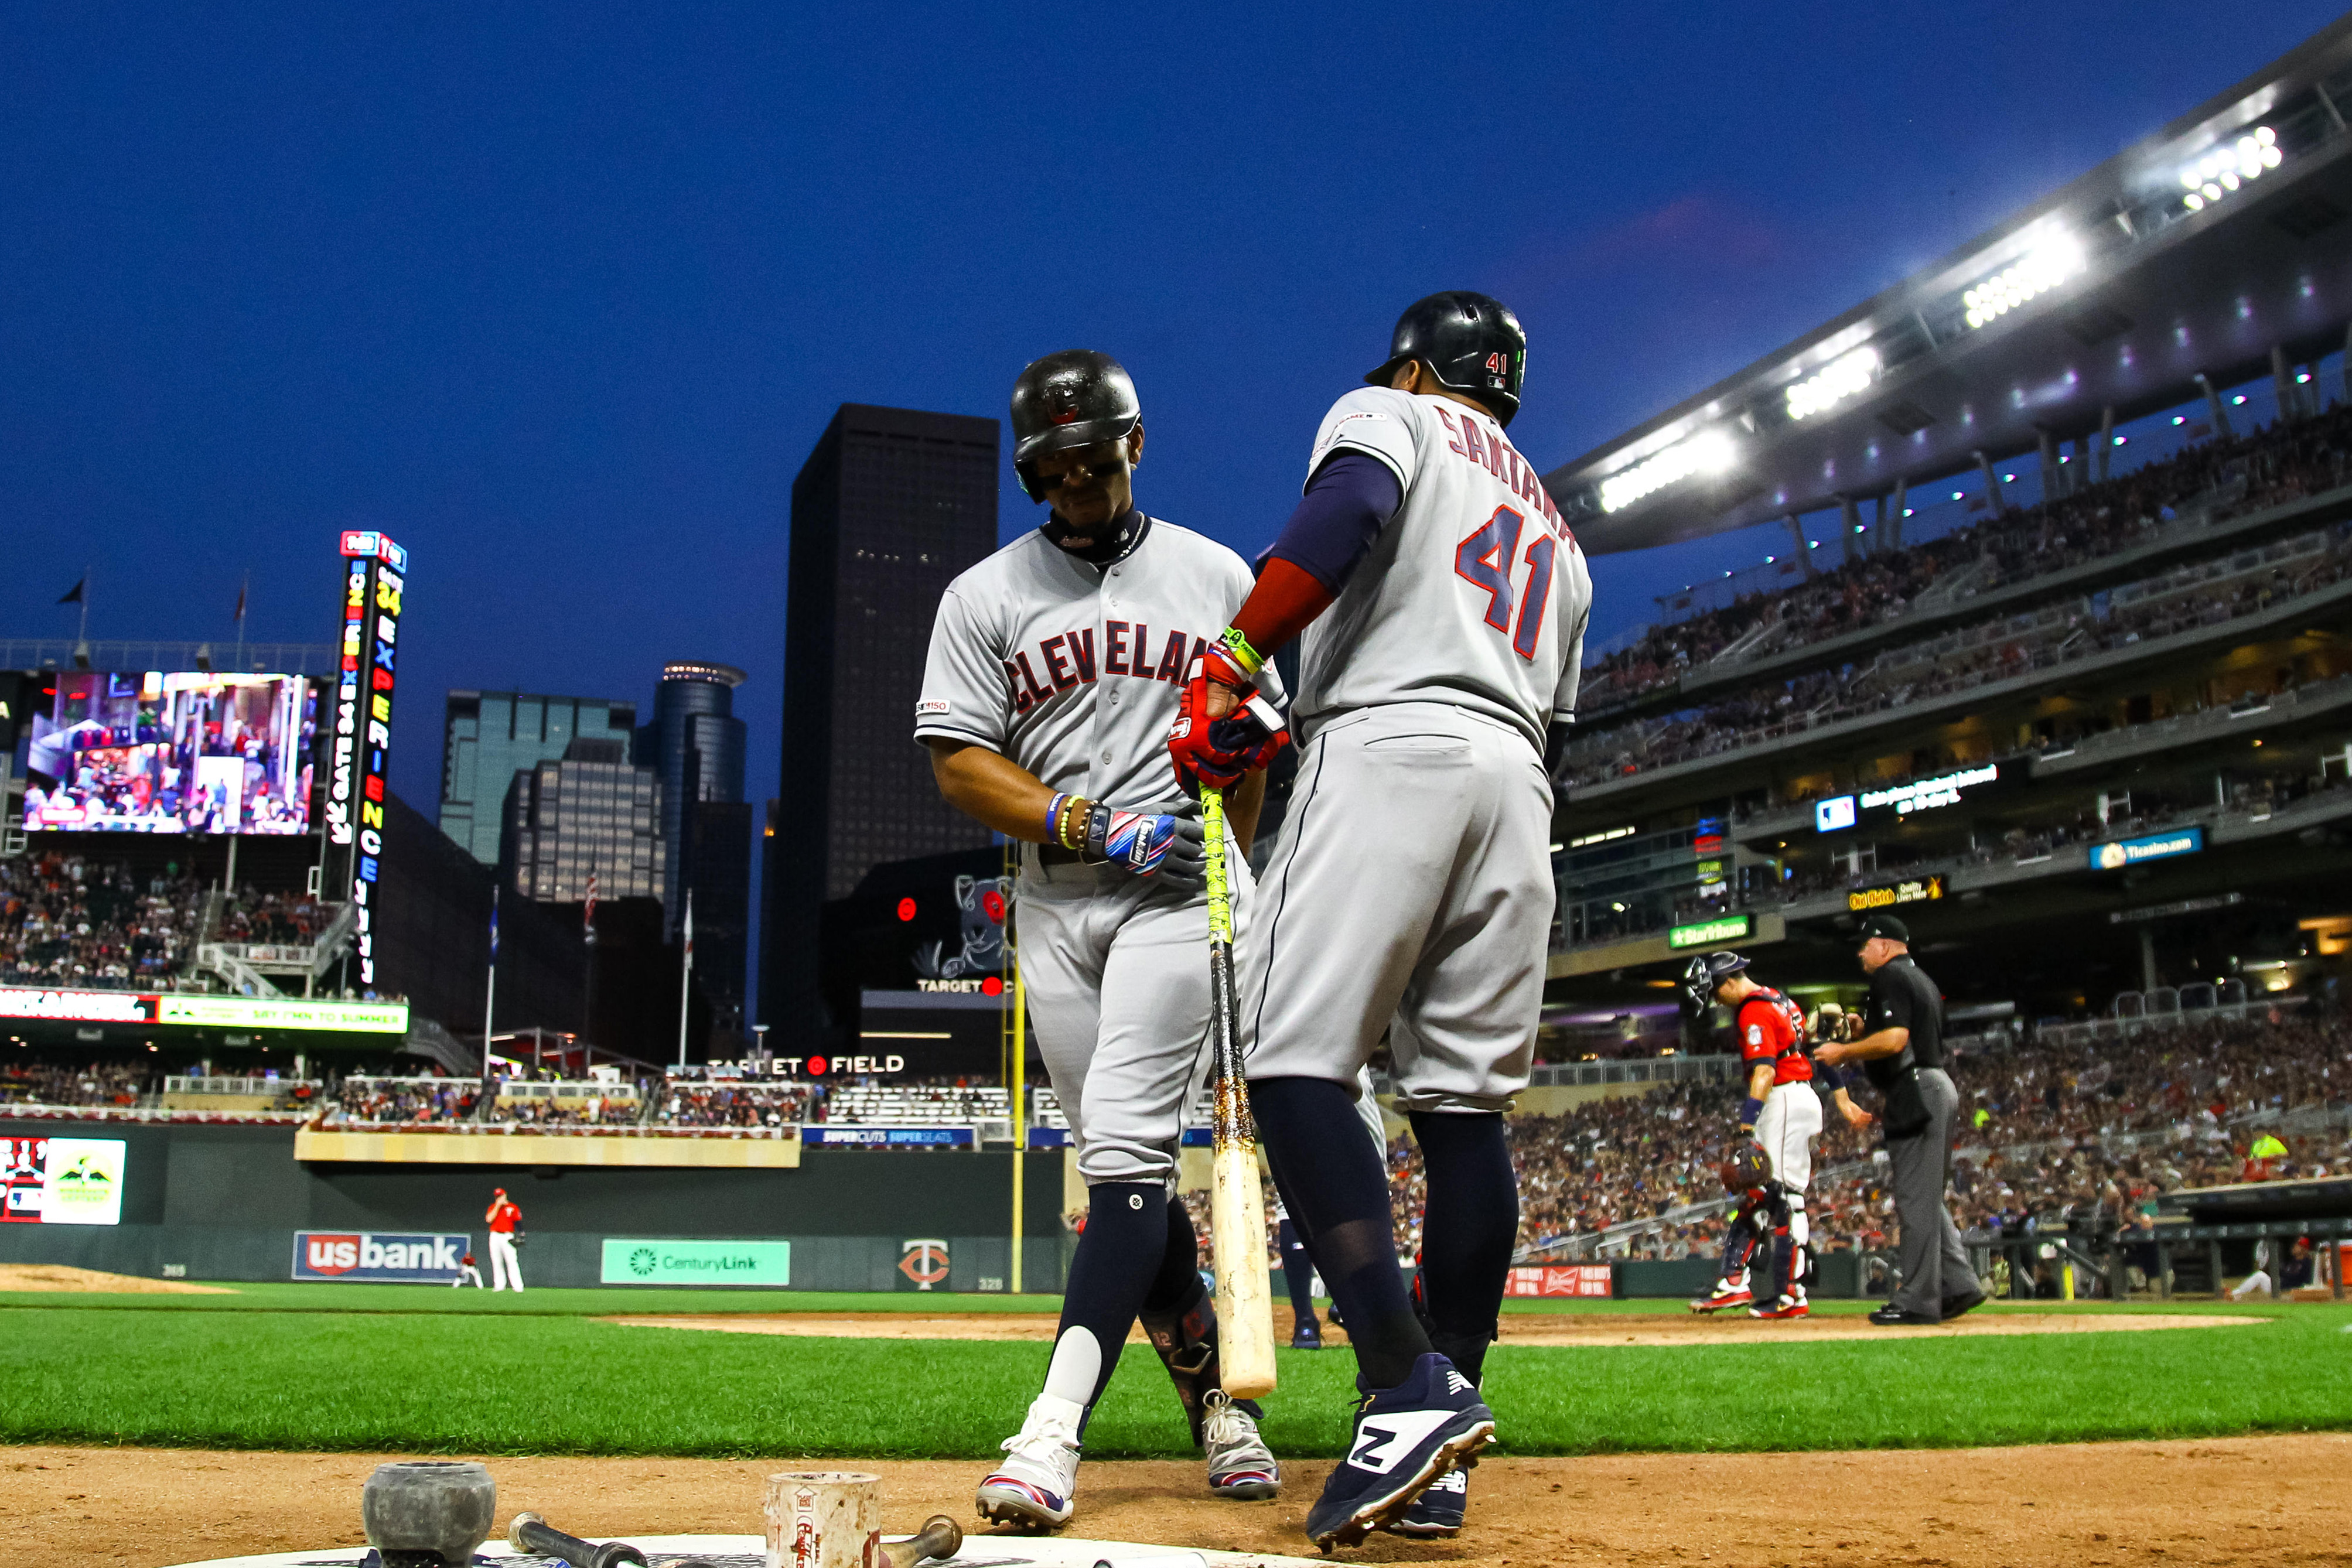 If Not Francisco Lindor in the Leadoff Spot, Then Who? A Handy Guide